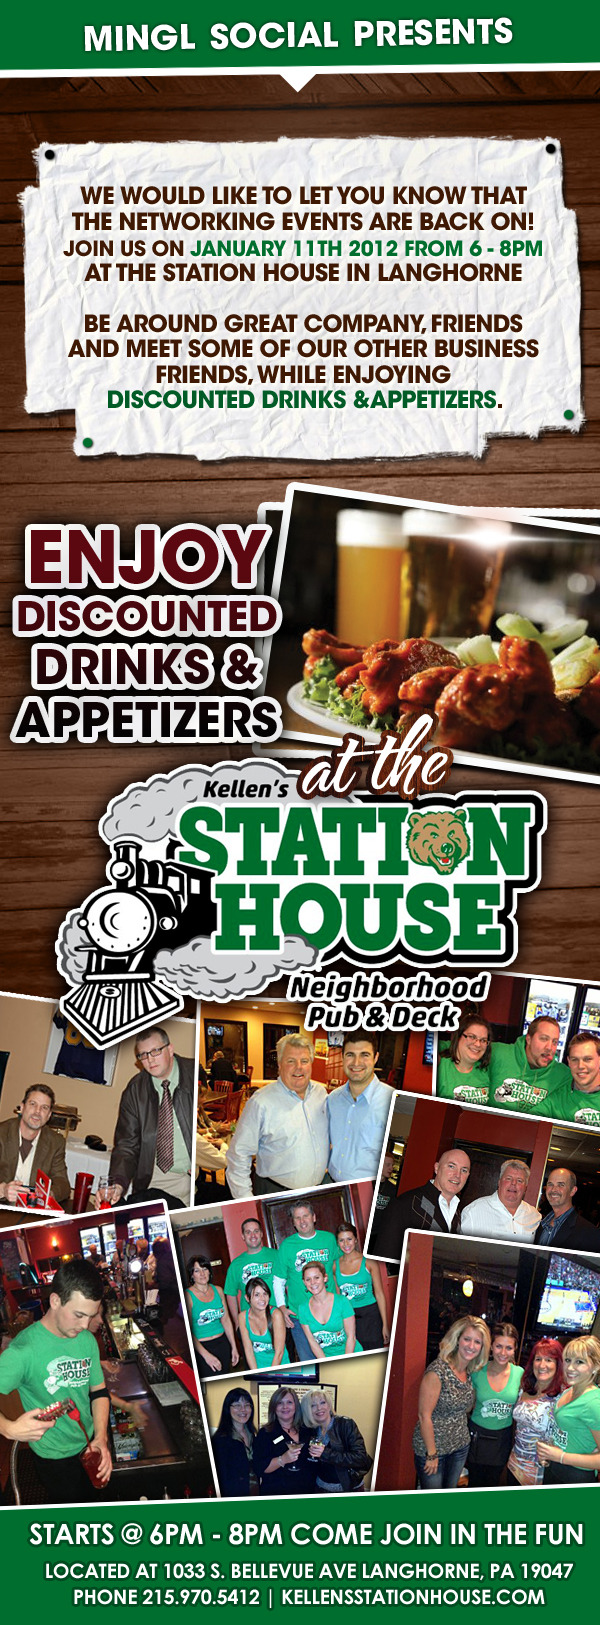 Mingl Social Happy Hour at Kellen's Station House